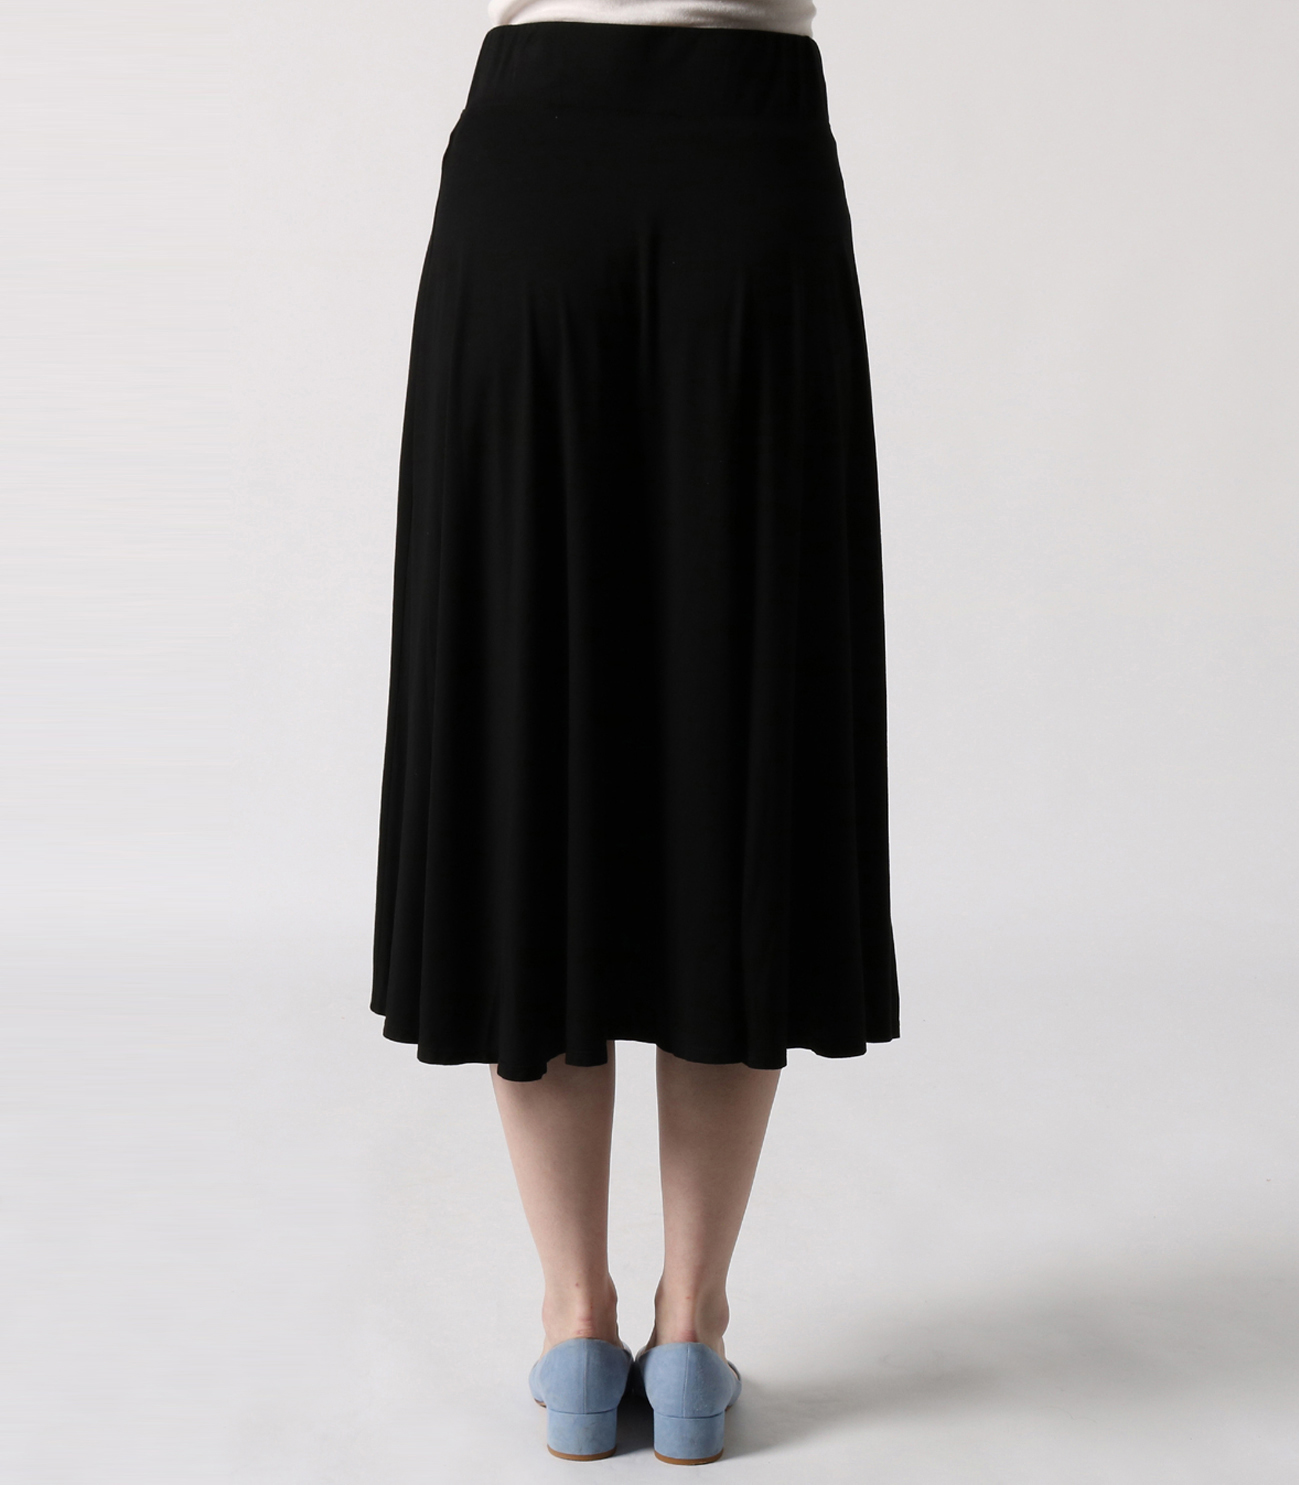 refined jersey flared skirt 詳細画像 black 4